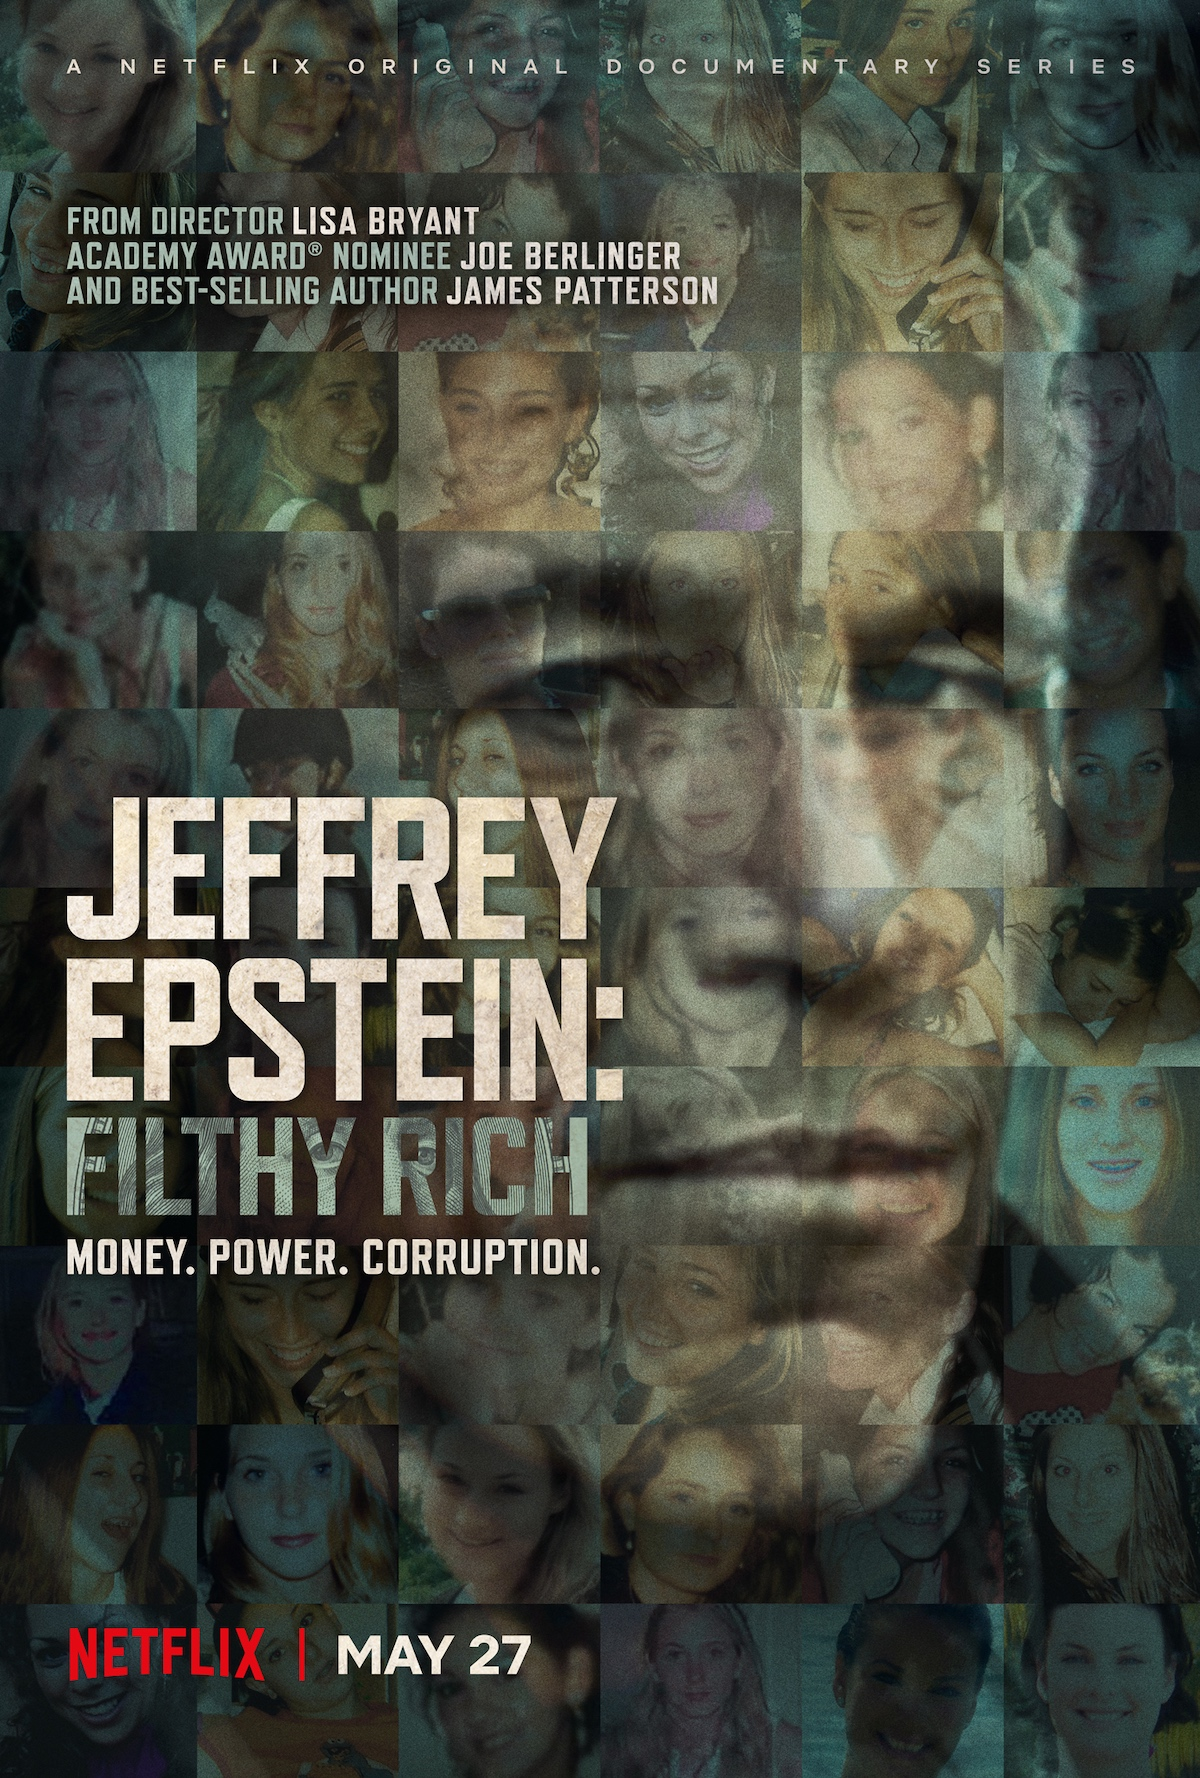 Jeffrey Epstein Filthy Rich netflix docuseries documentray poster